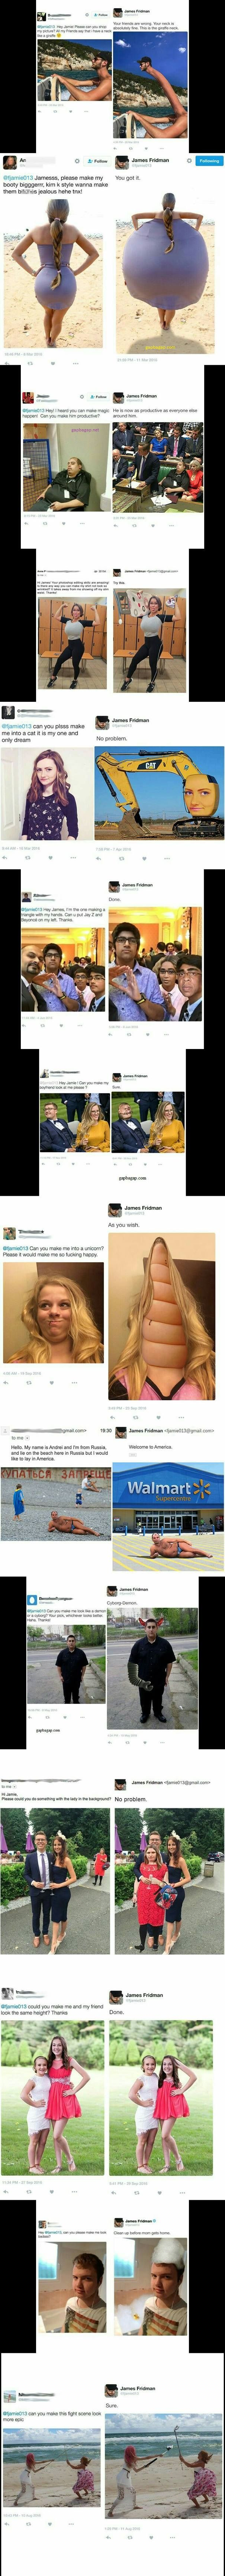 Top 15 Funny Photoshop By James Fridman